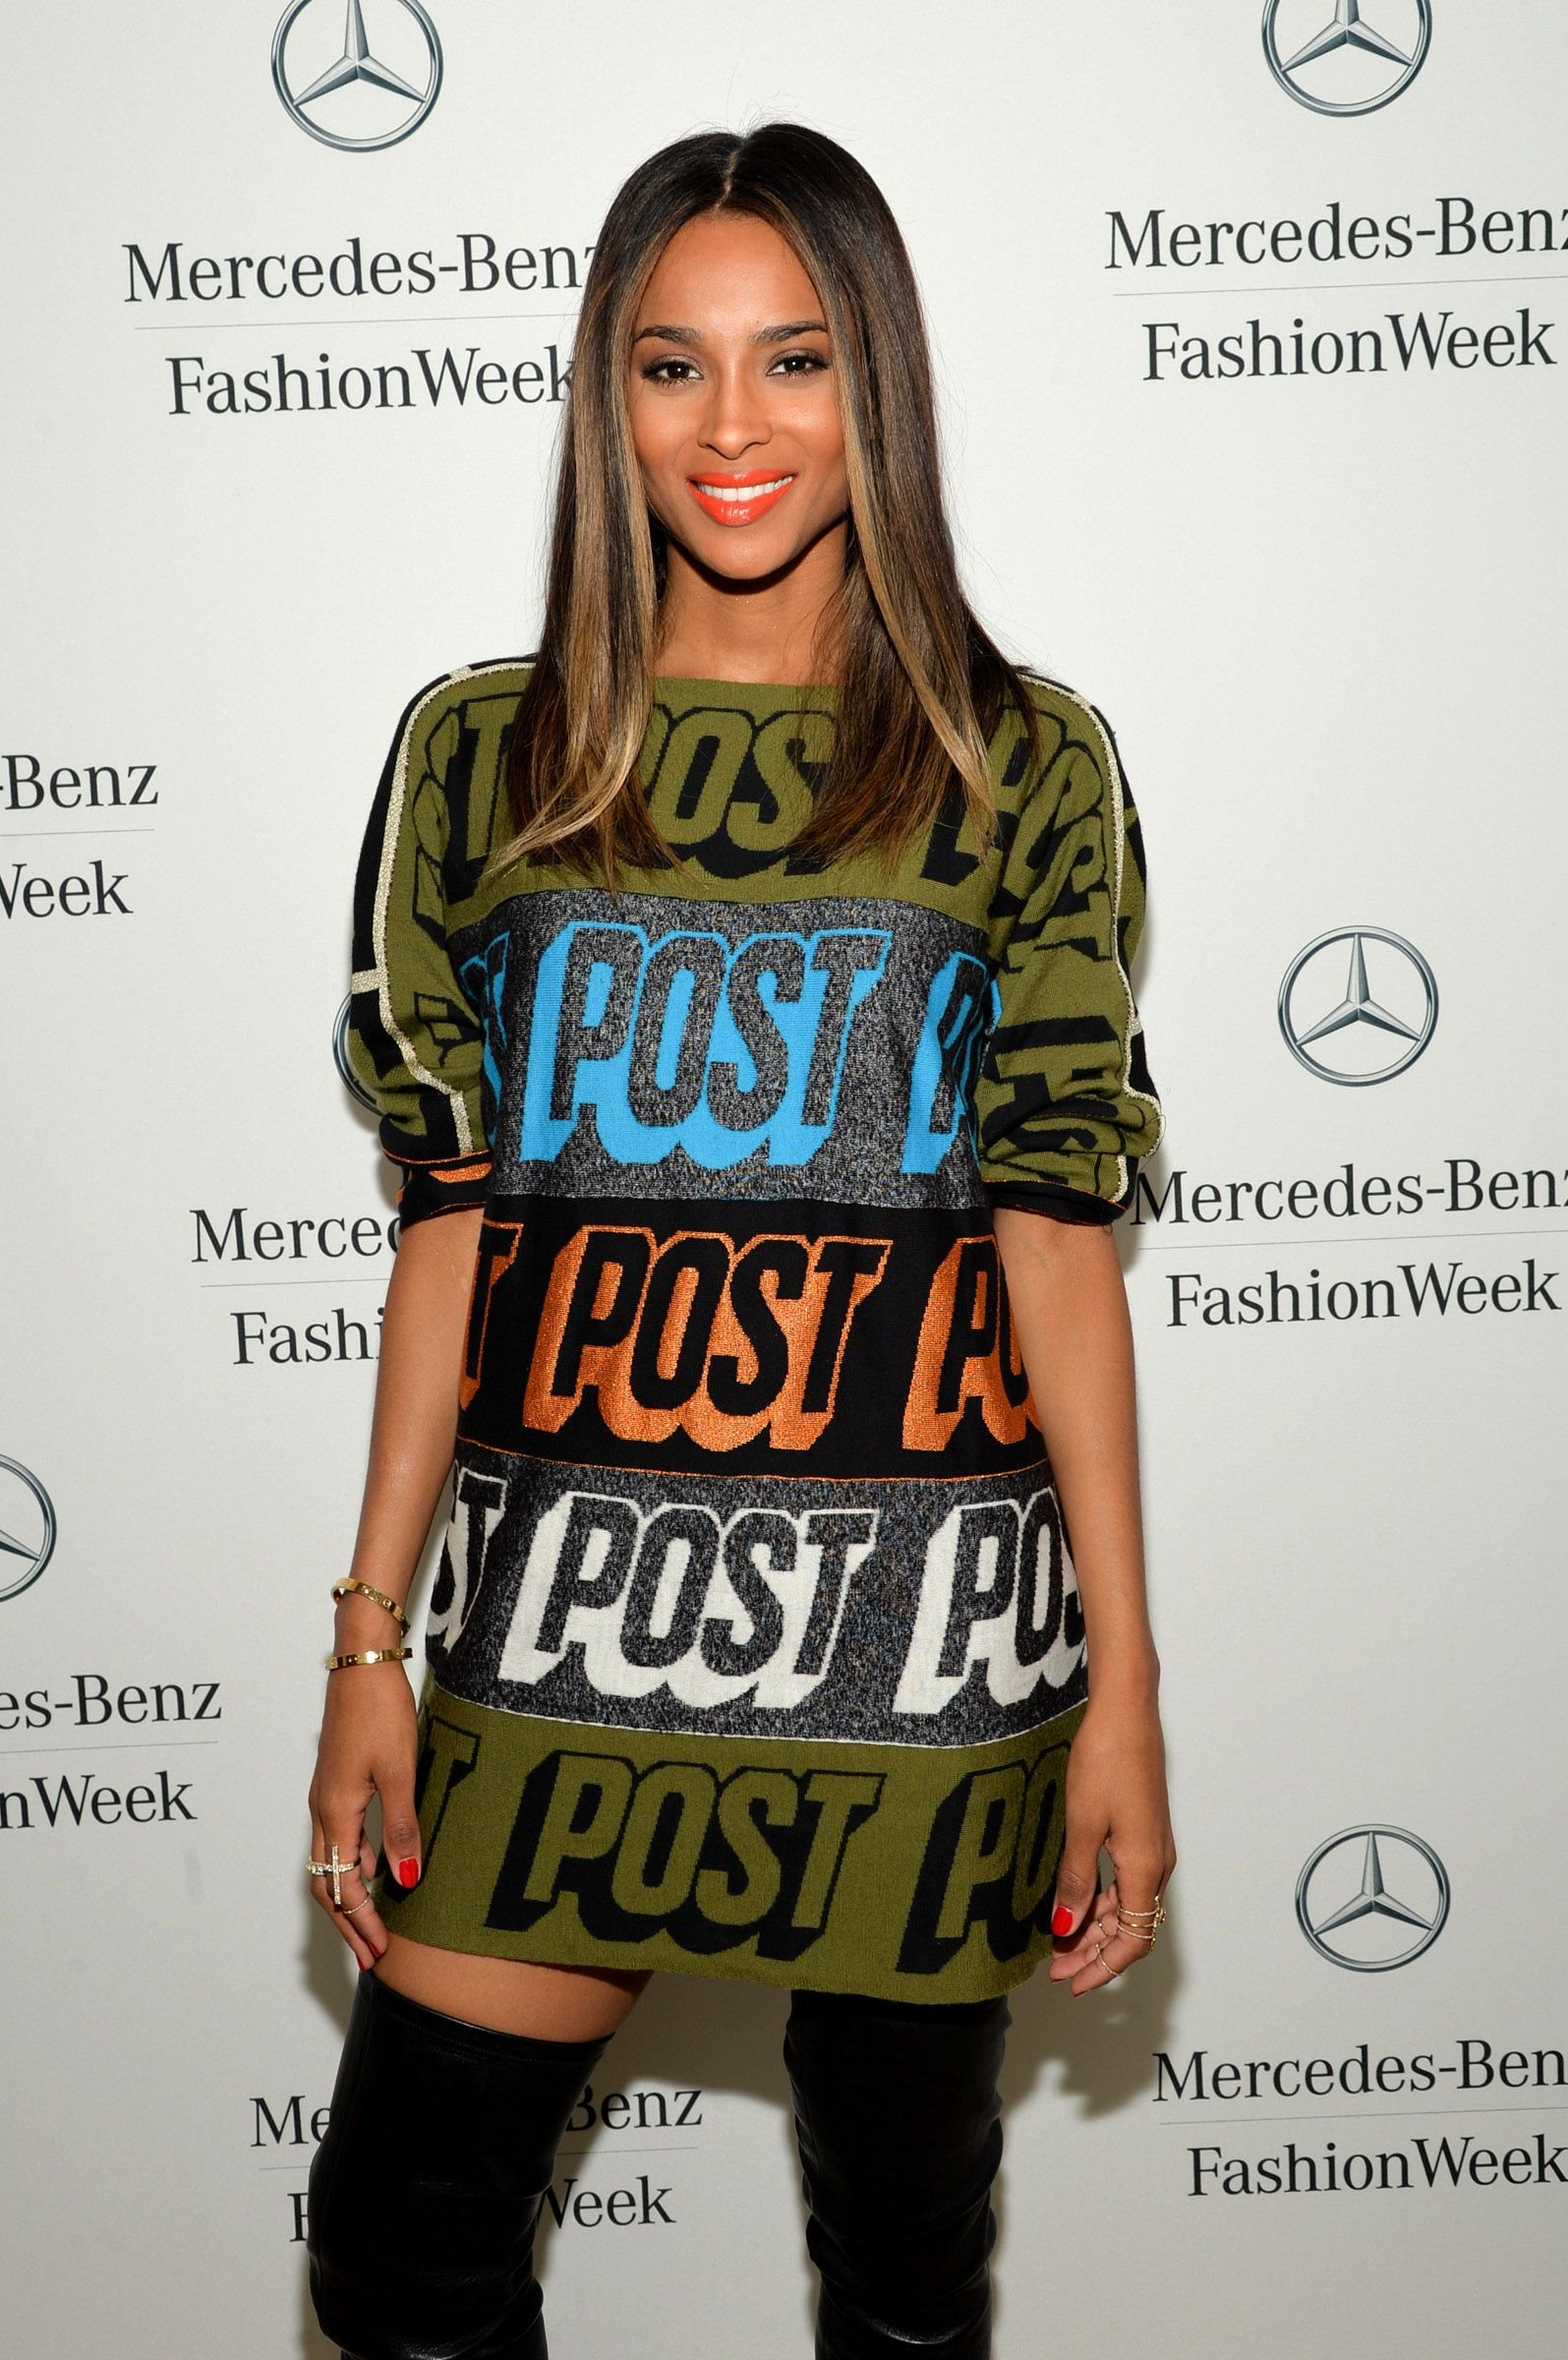 Ciara at the Mercedes-Benz Star Lounge during Mercedes-Benz Fashion Week Spring on September 9, 2013, in New York City | Photo: Getty Images